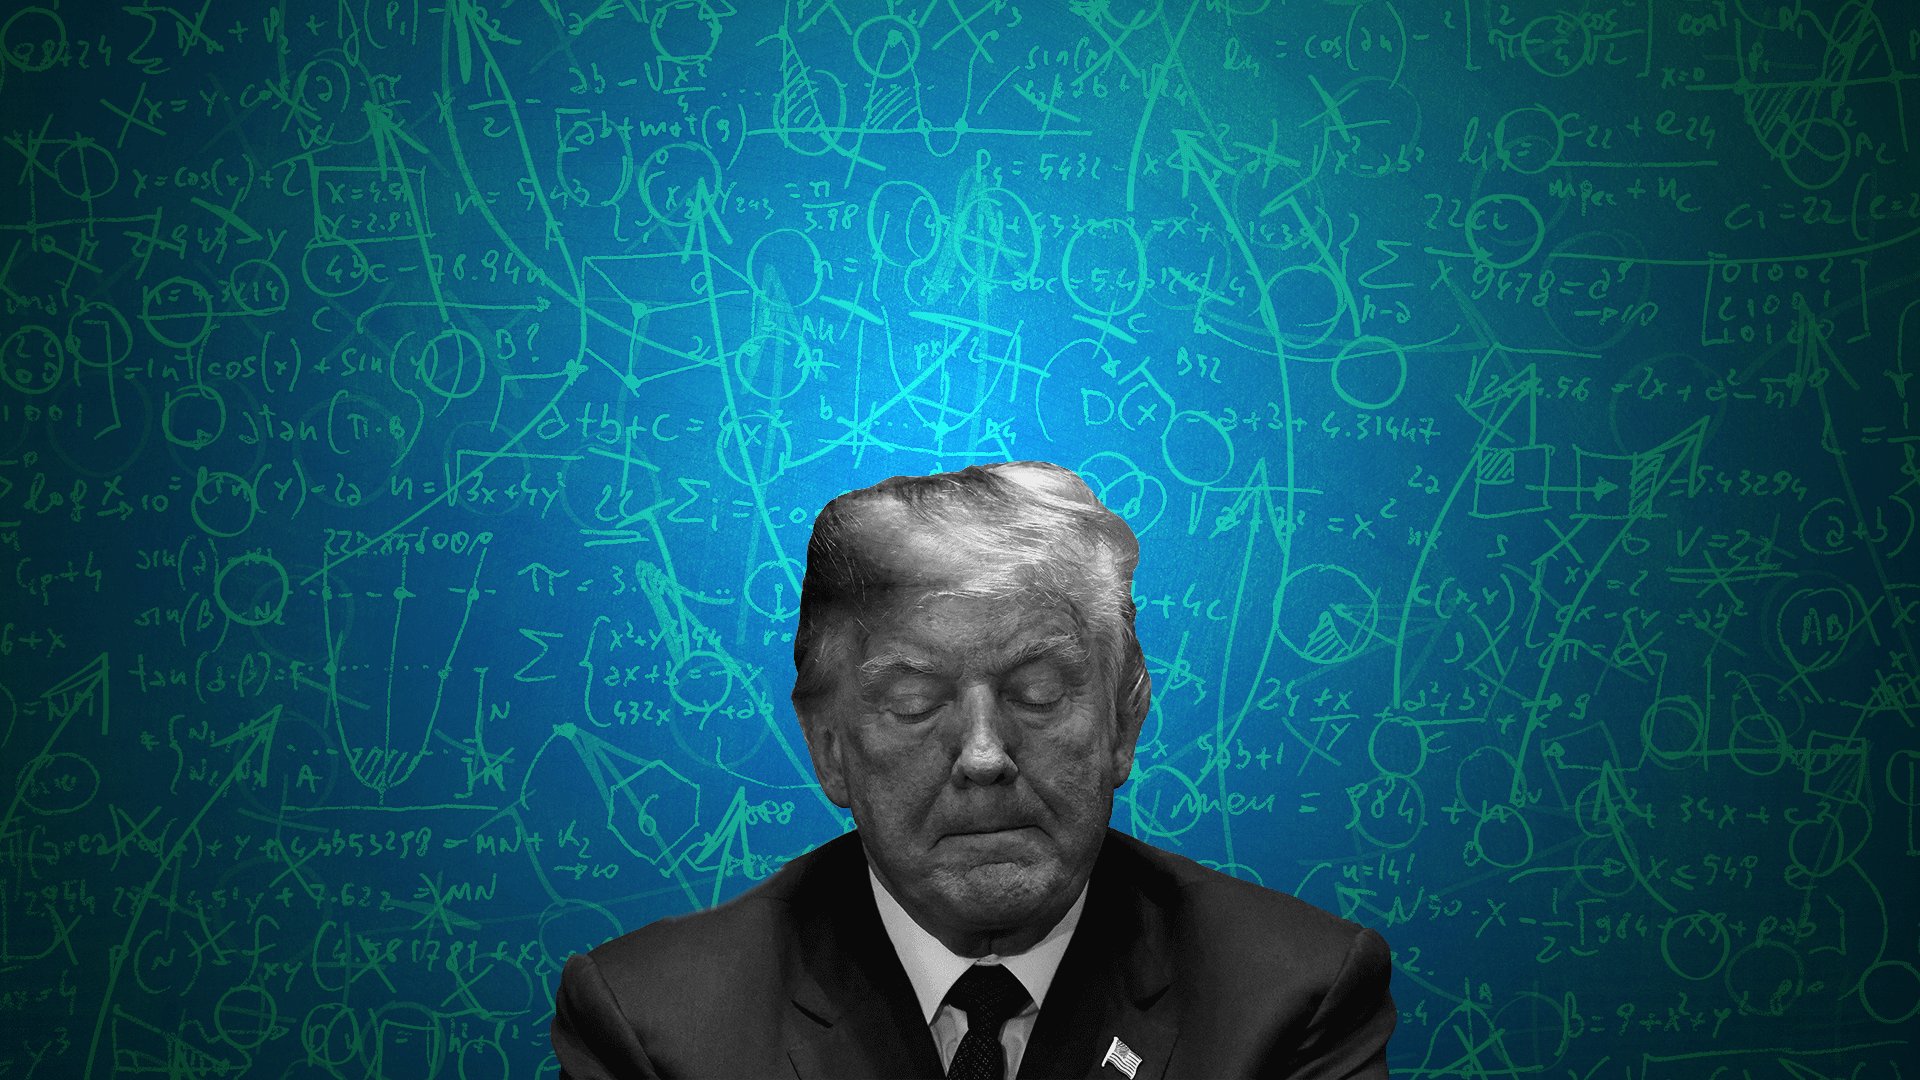 Illustration of President Trump looking down in front of a background of equations and strategy diagrams.